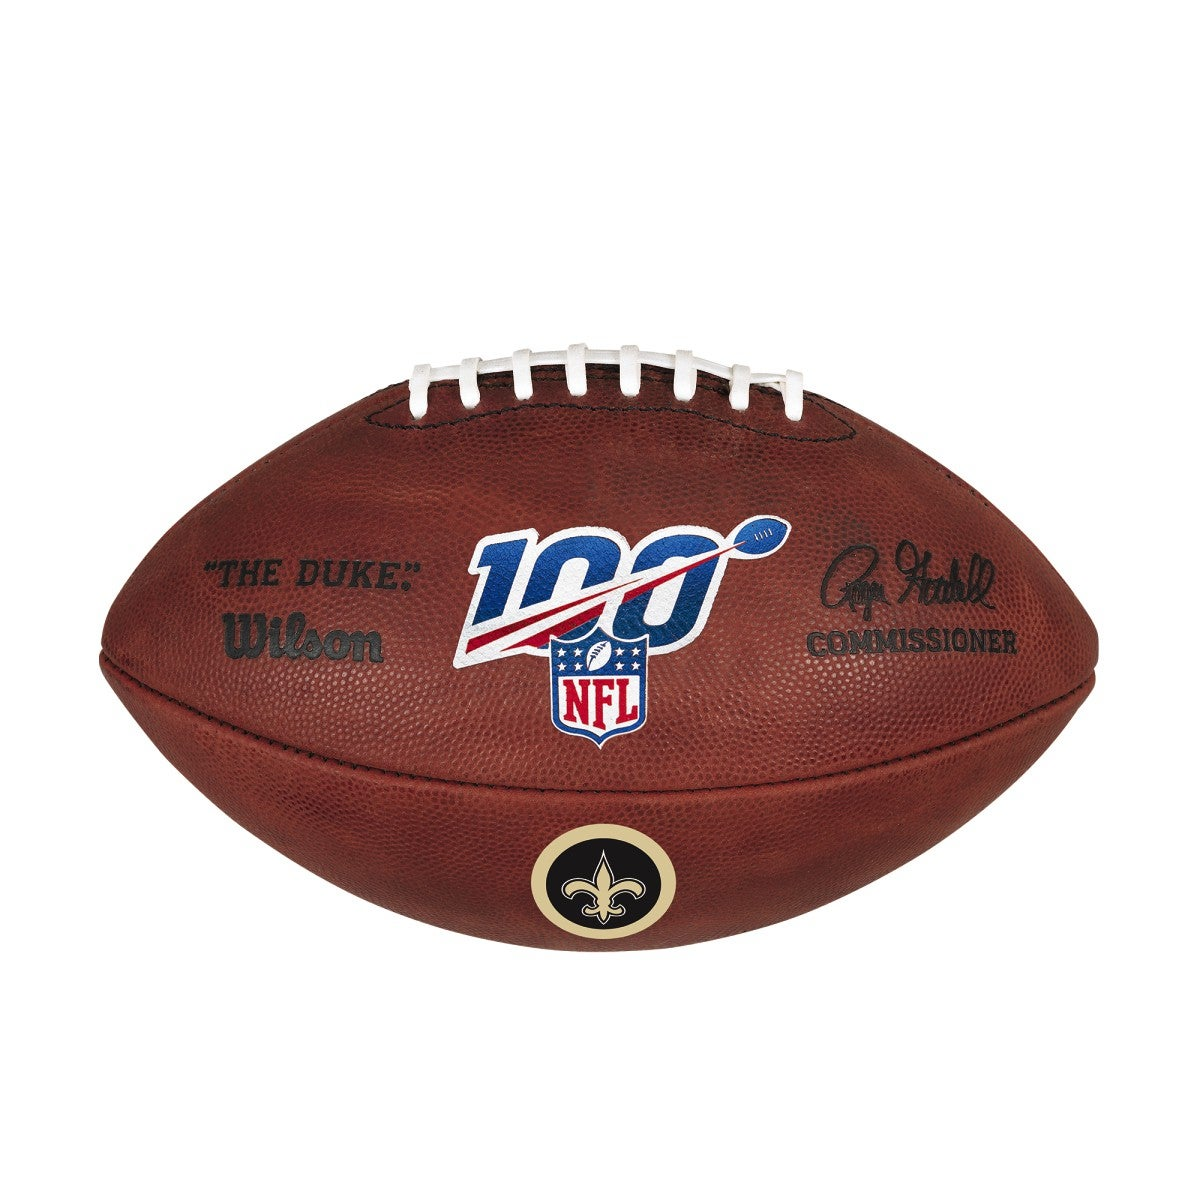 NFL 100 THE DUKE DECAL NFL FOOTBALL - NEW ORLEANS SAINTS